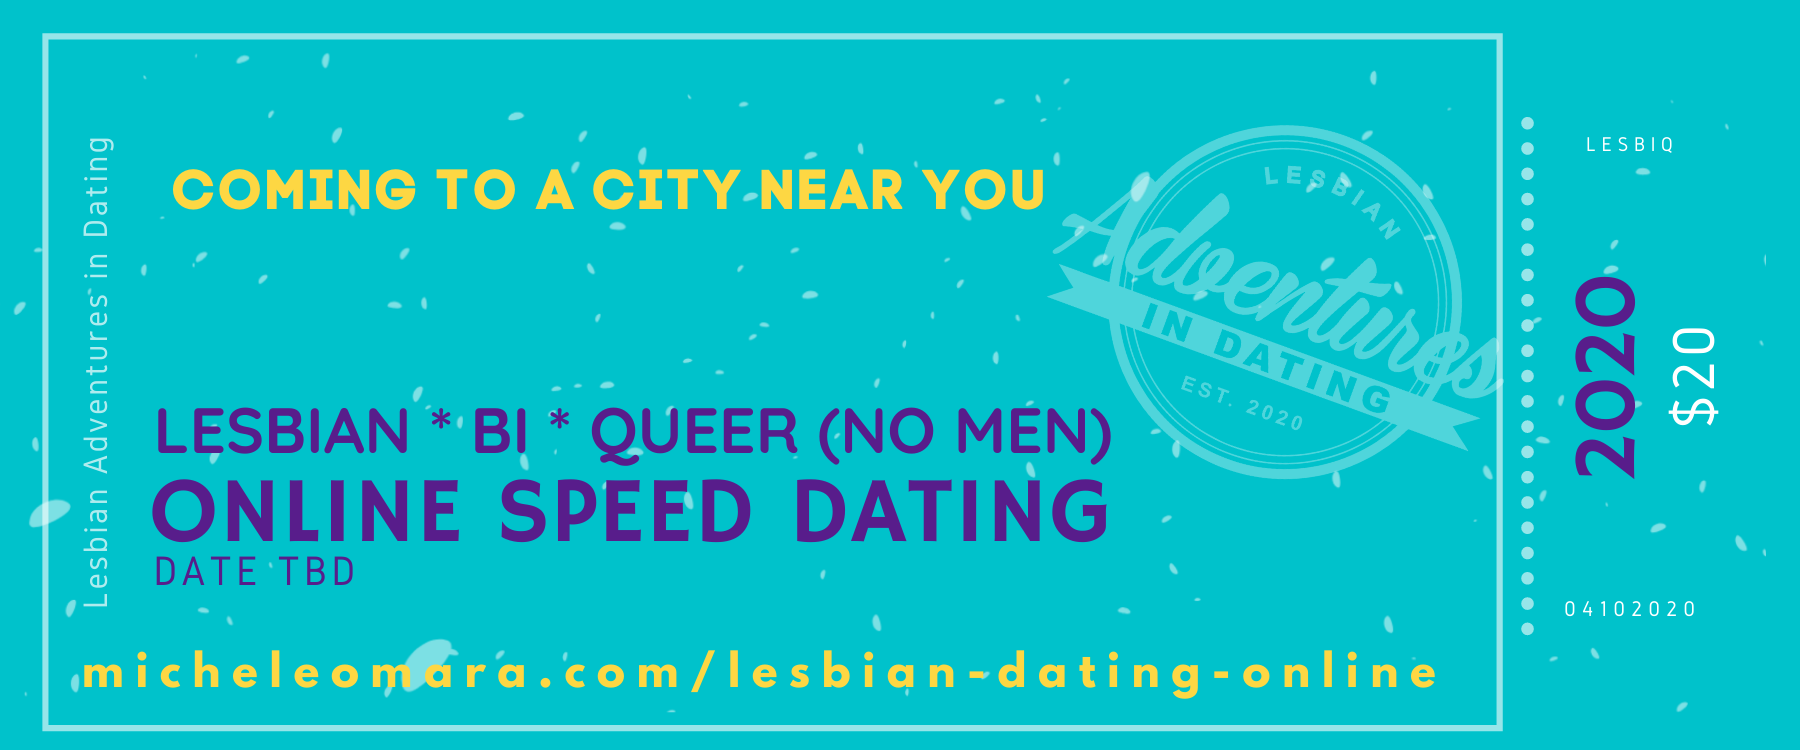 lesbian speed dating, lesbian dating